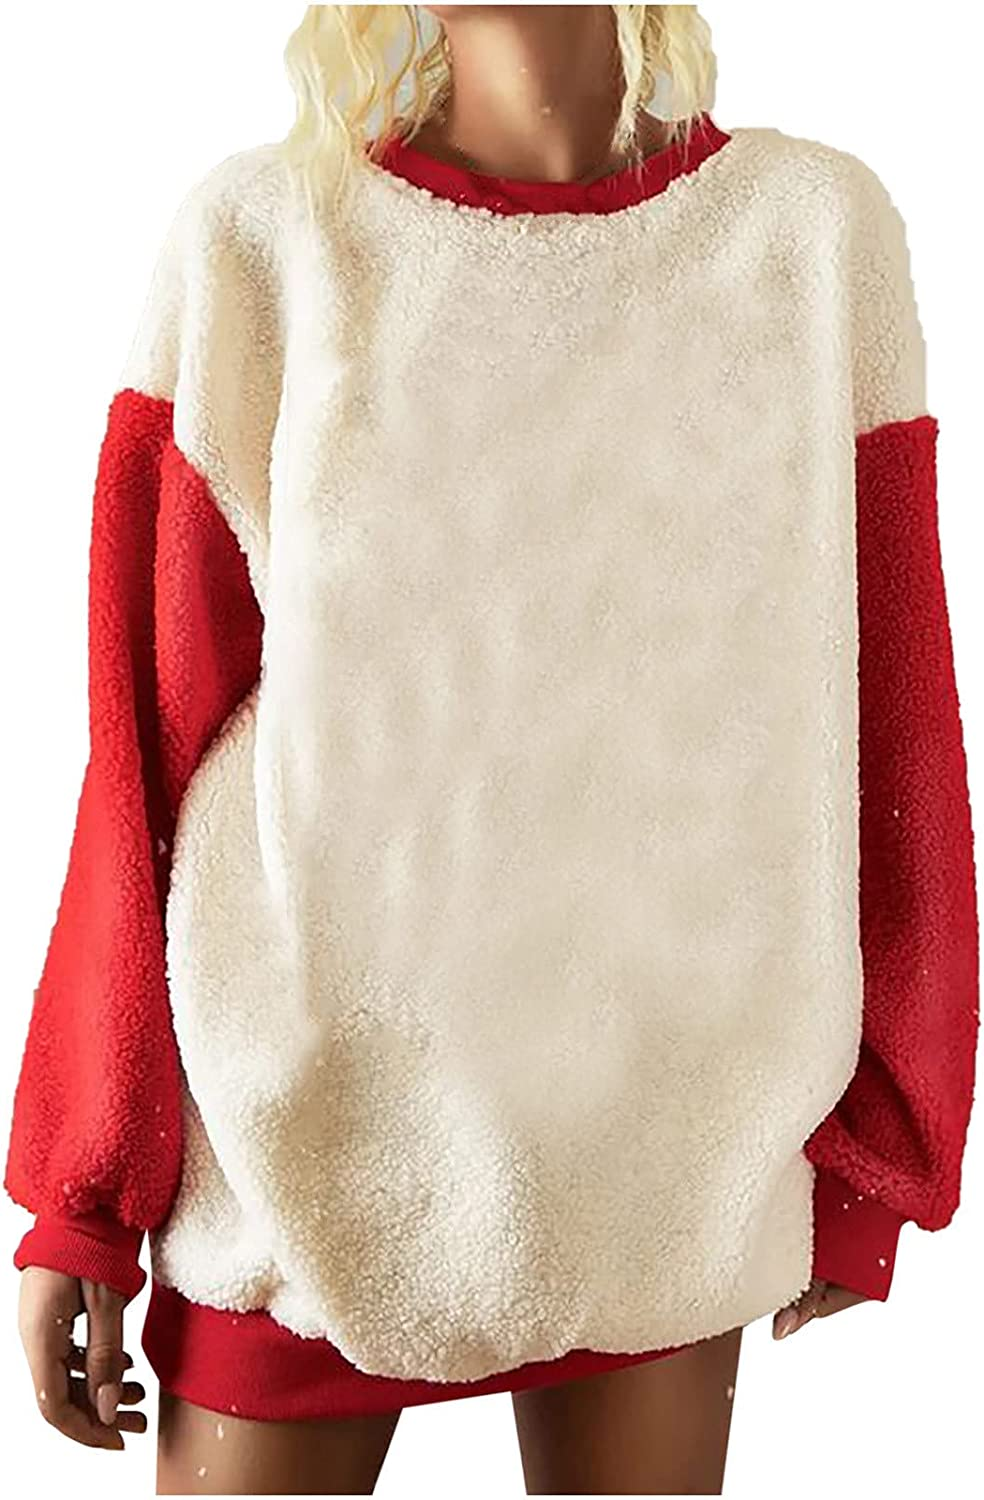 BRKEWI Merry Christmas Fuzzy Sweatshirt Color Special Campaign Block Same day shipping Clothe Women